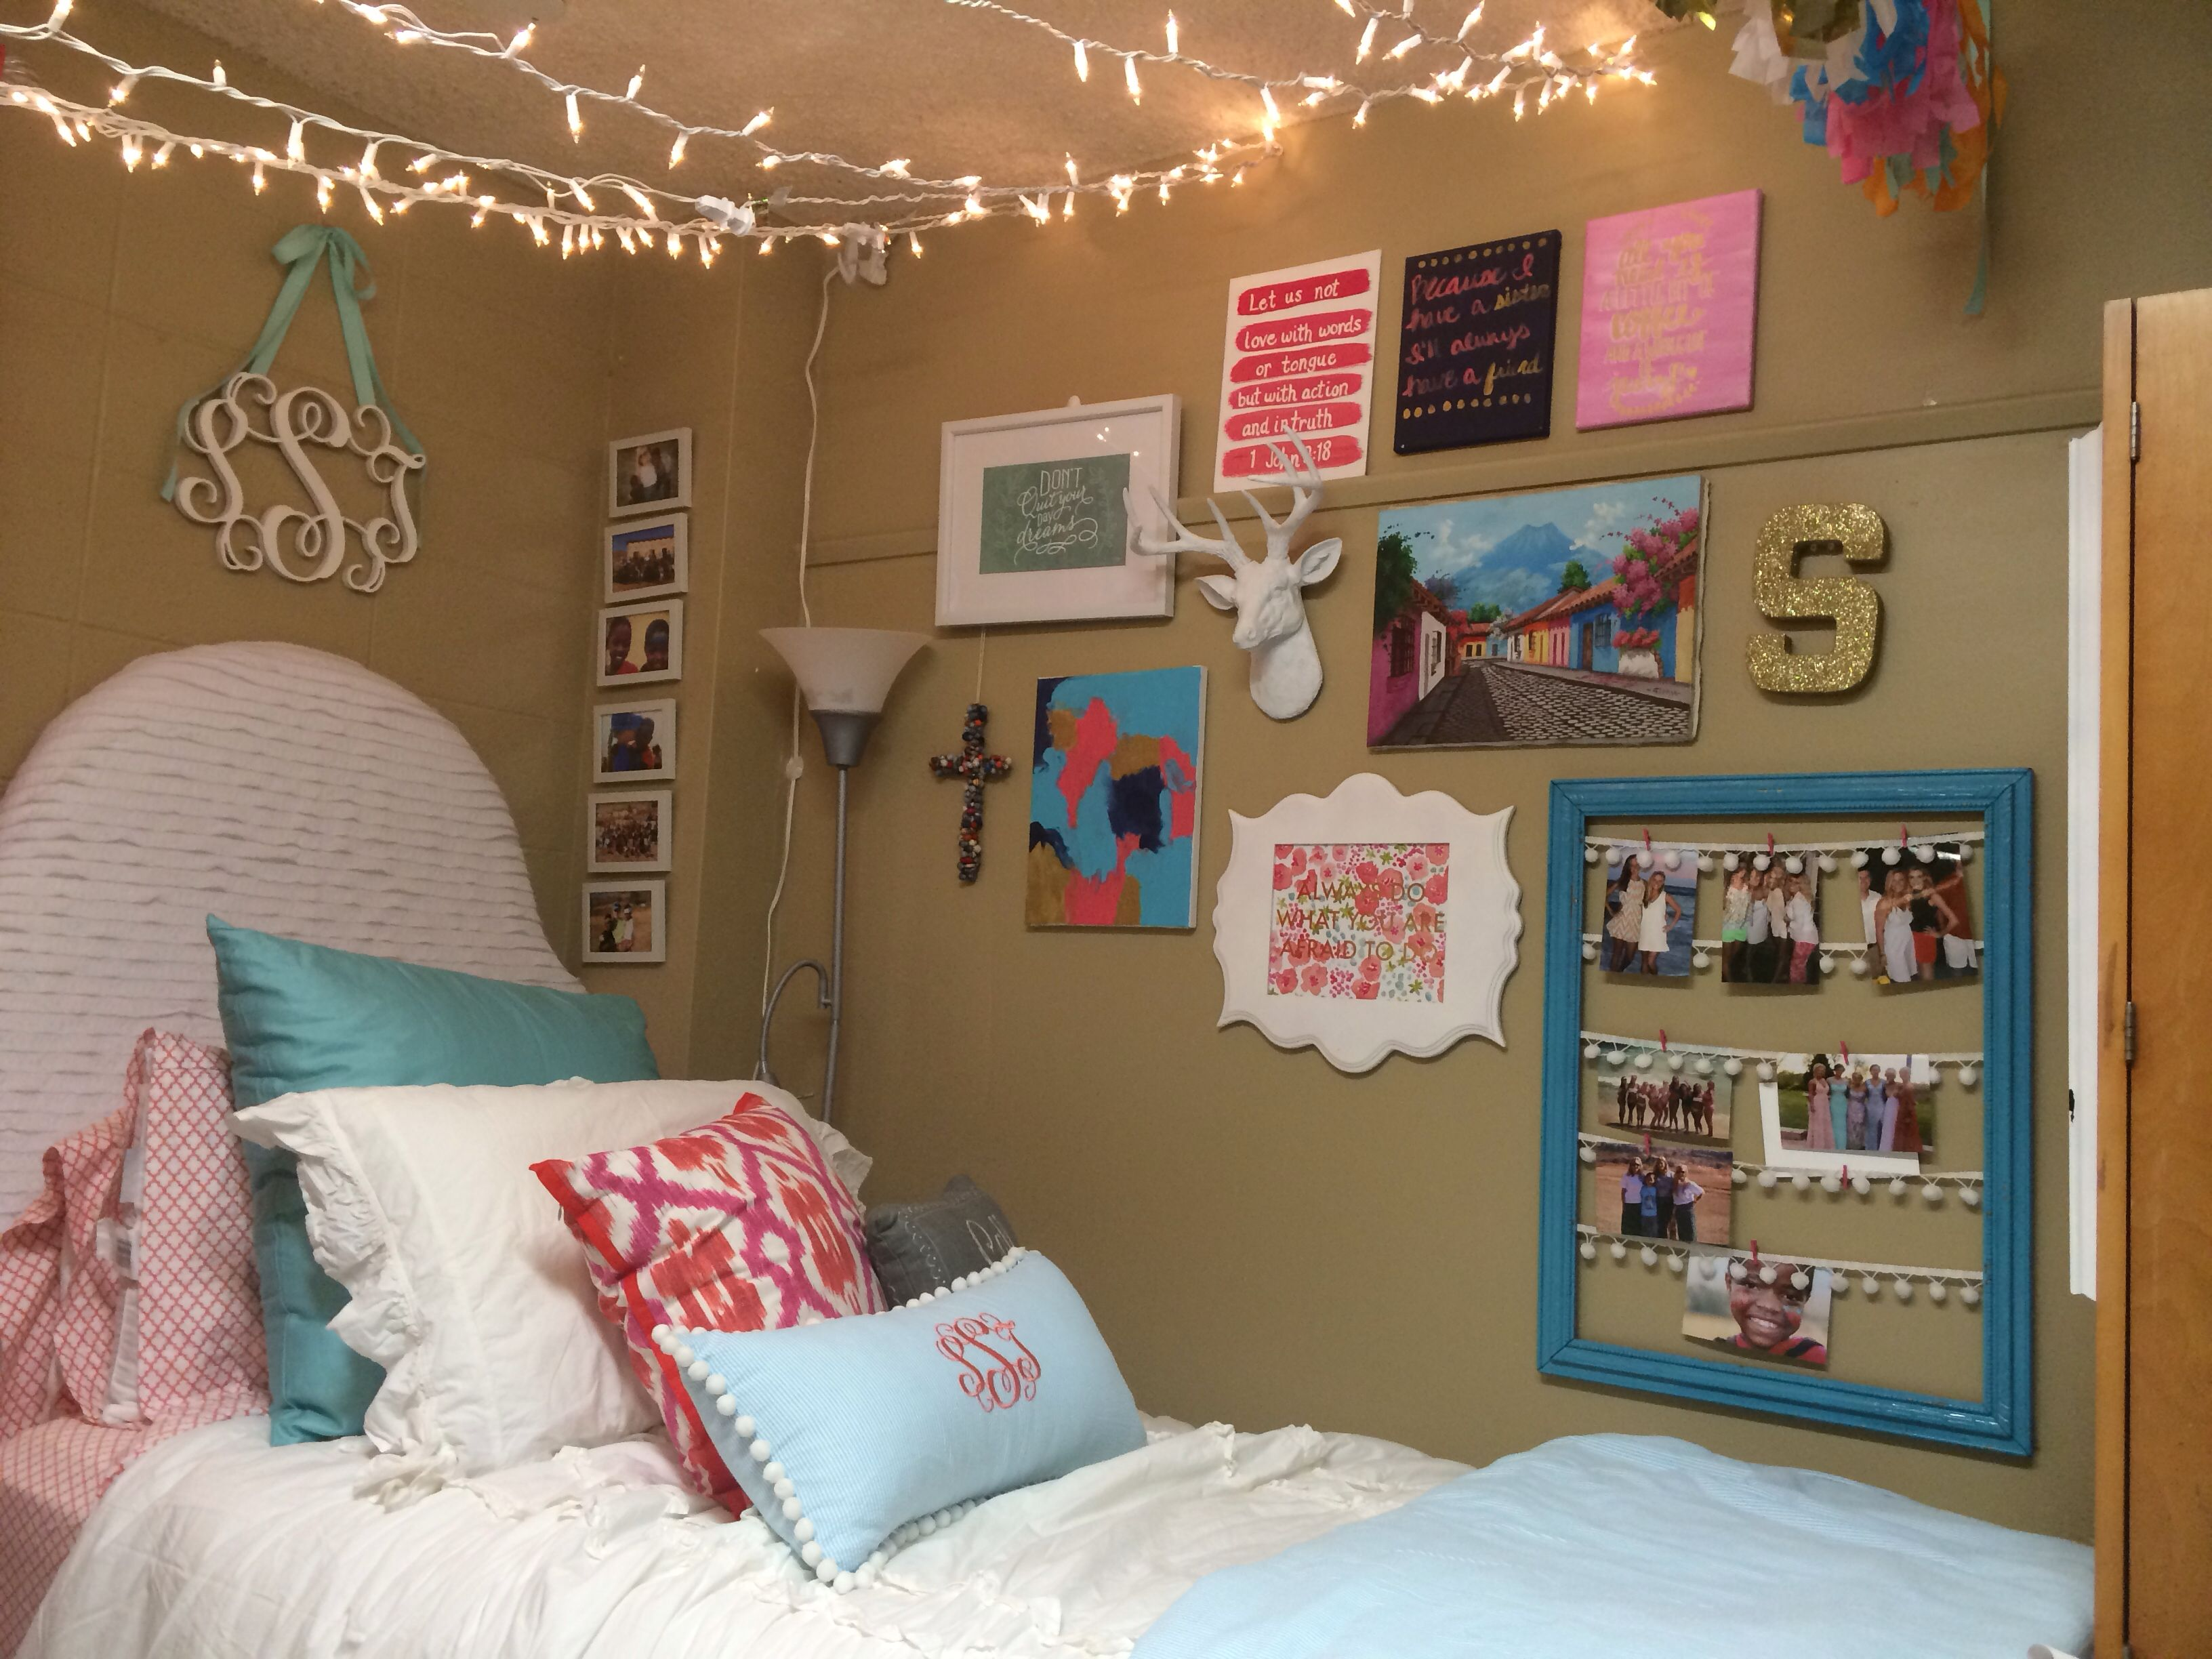 crosby dorm ole miss love the gallery wall and lights dorm ideas dorm dorm room dorm. Black Bedroom Furniture Sets. Home Design Ideas